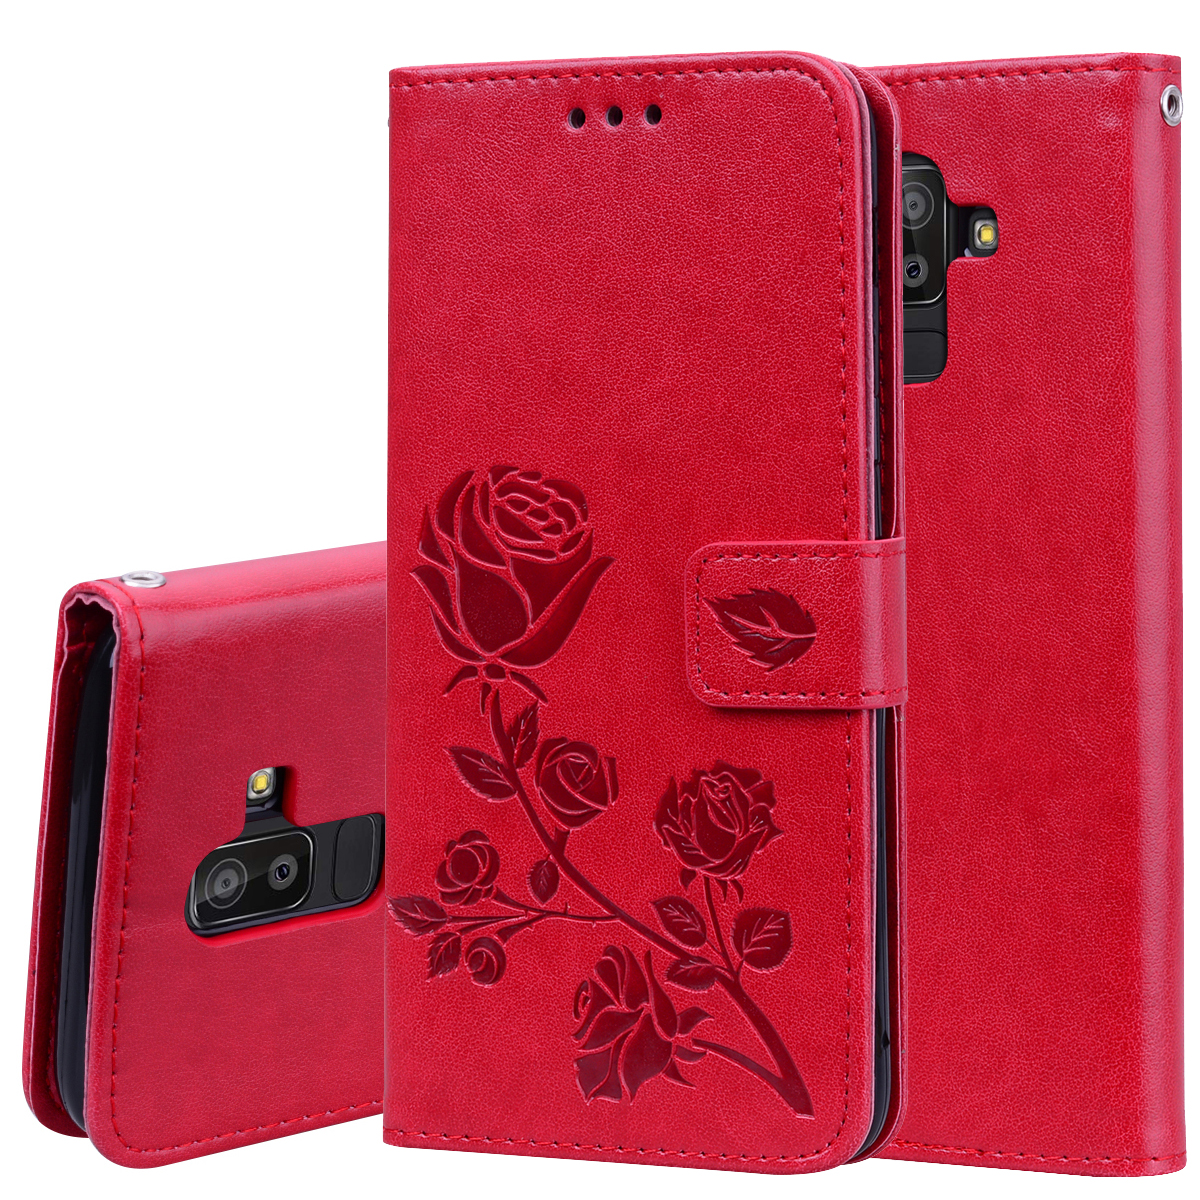 Rose Leather Book Case For Samsung J2 Pro J4 J6 J8 Plus 2018 Soft Silicone Back Cover For Samsung A6 A8 Plus A7 A9 2018 Wallet